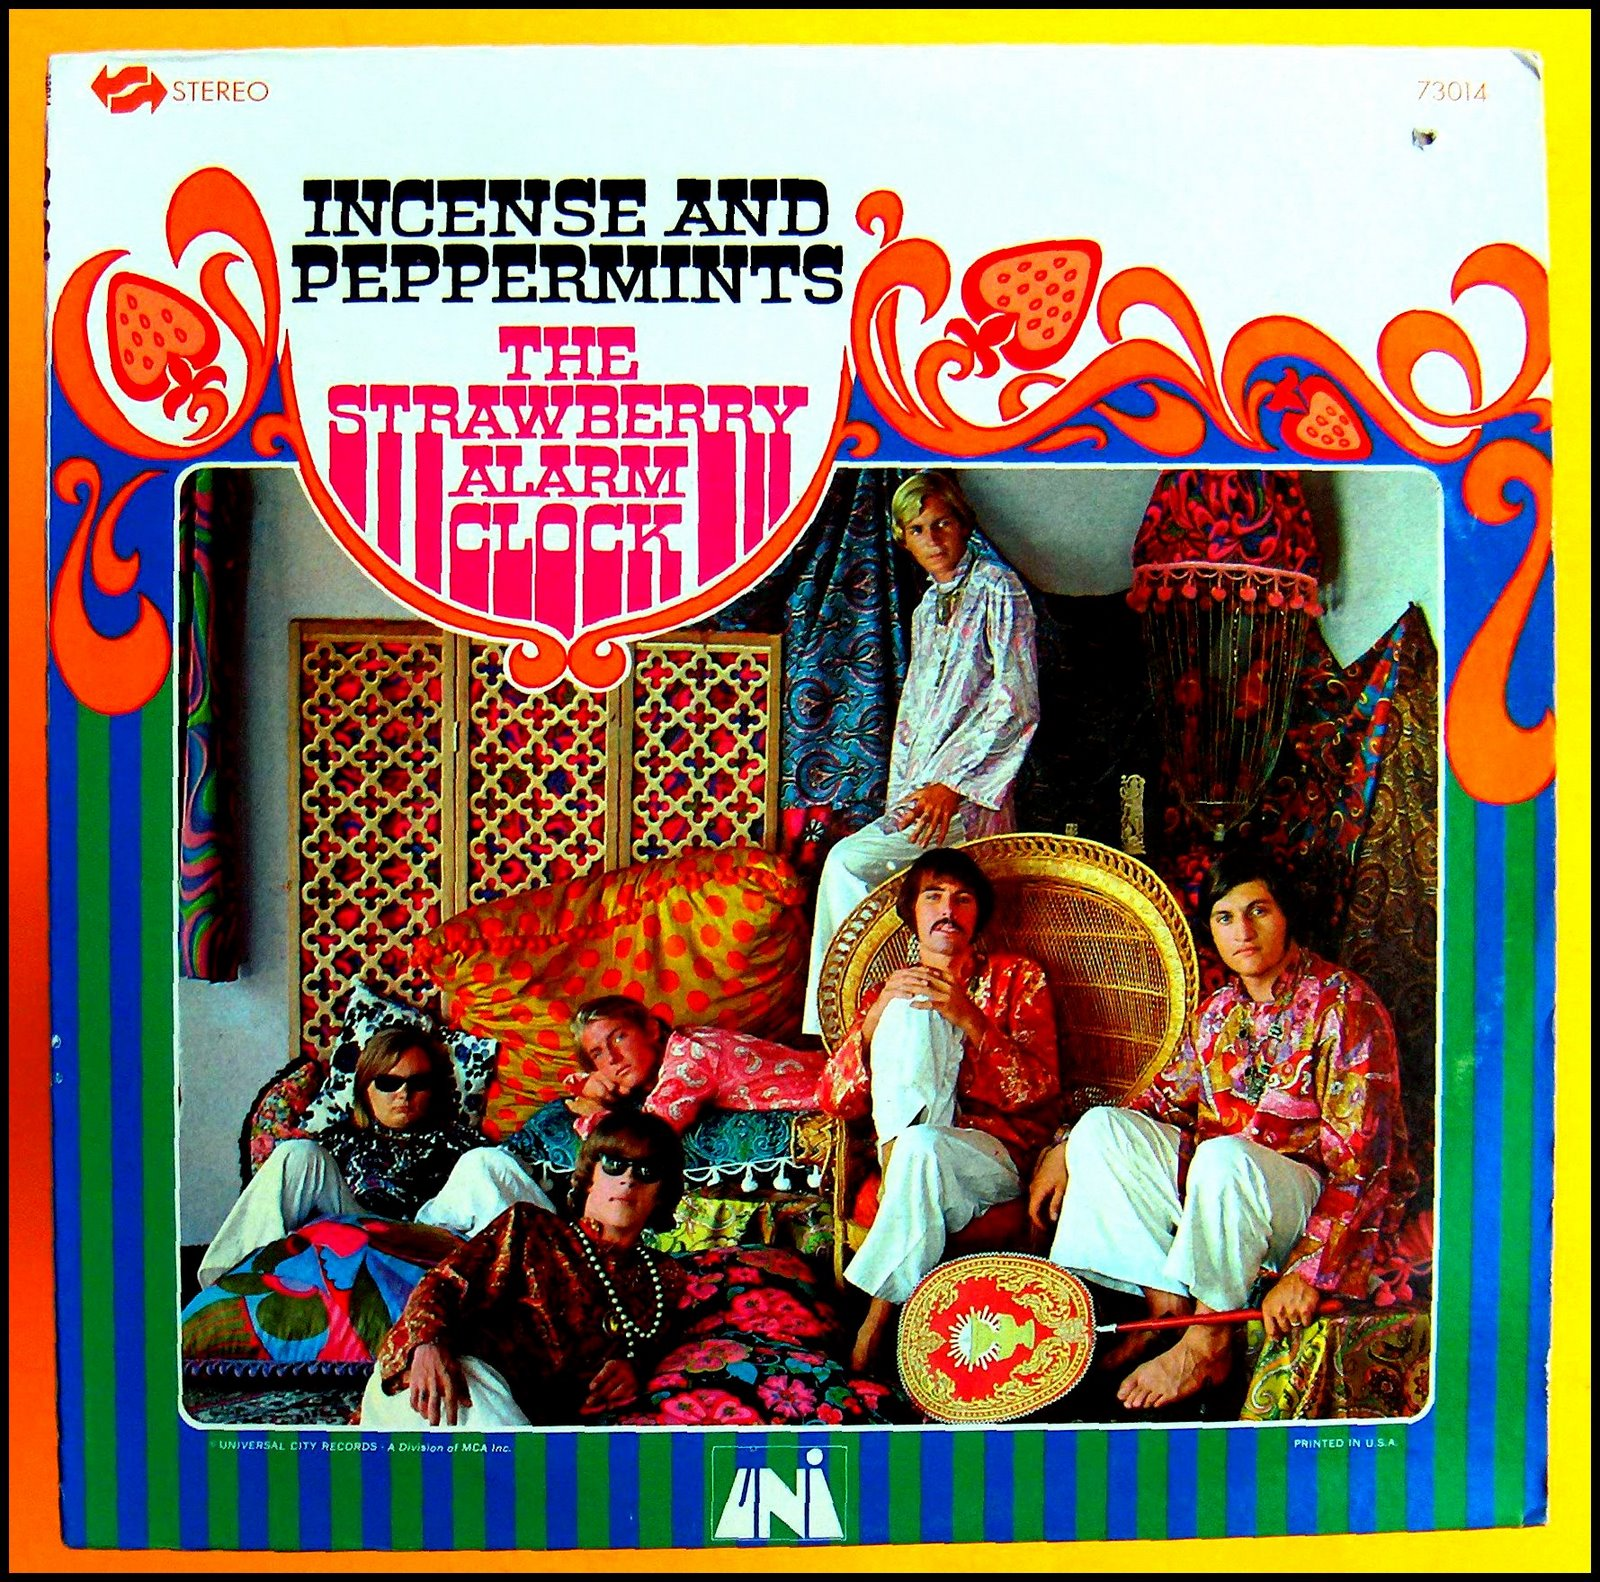 Strawberry Alarm Clock - Incense &amp; Peppermints